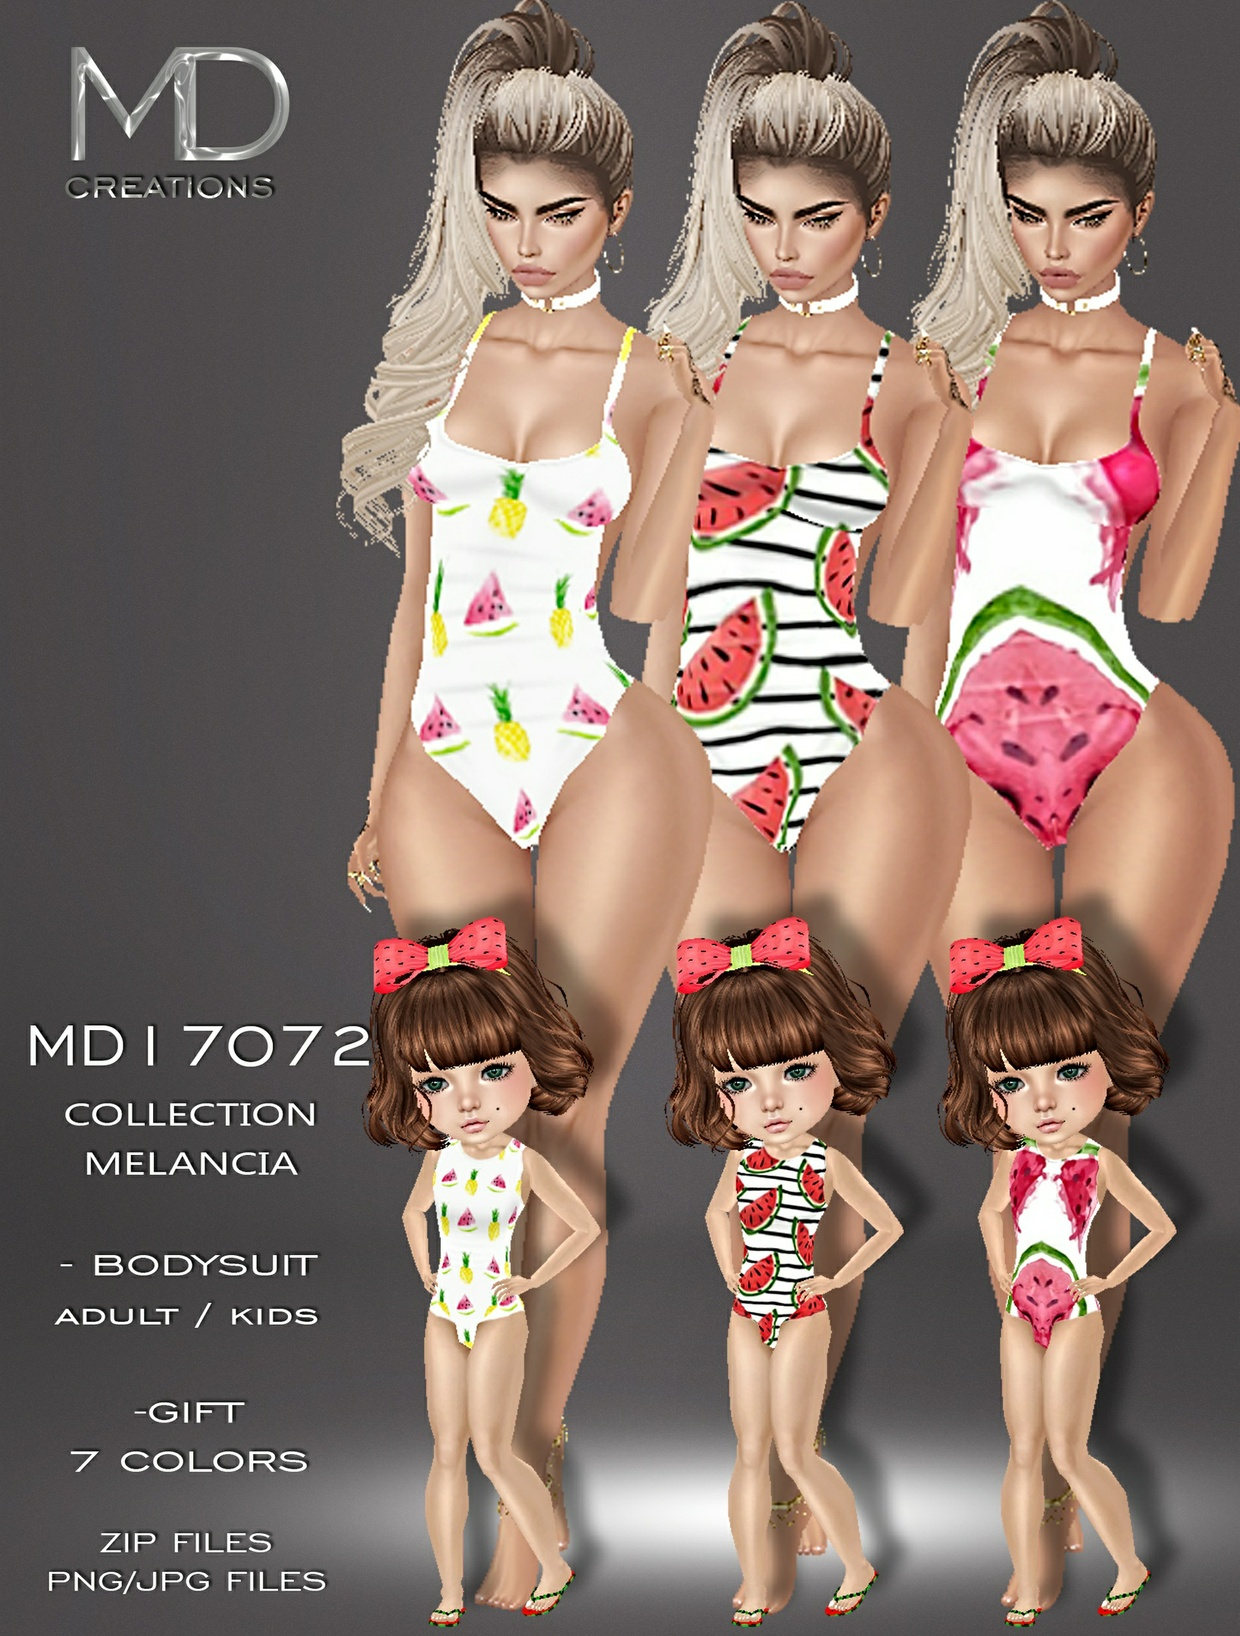 MD17072 - Collection Melancia II